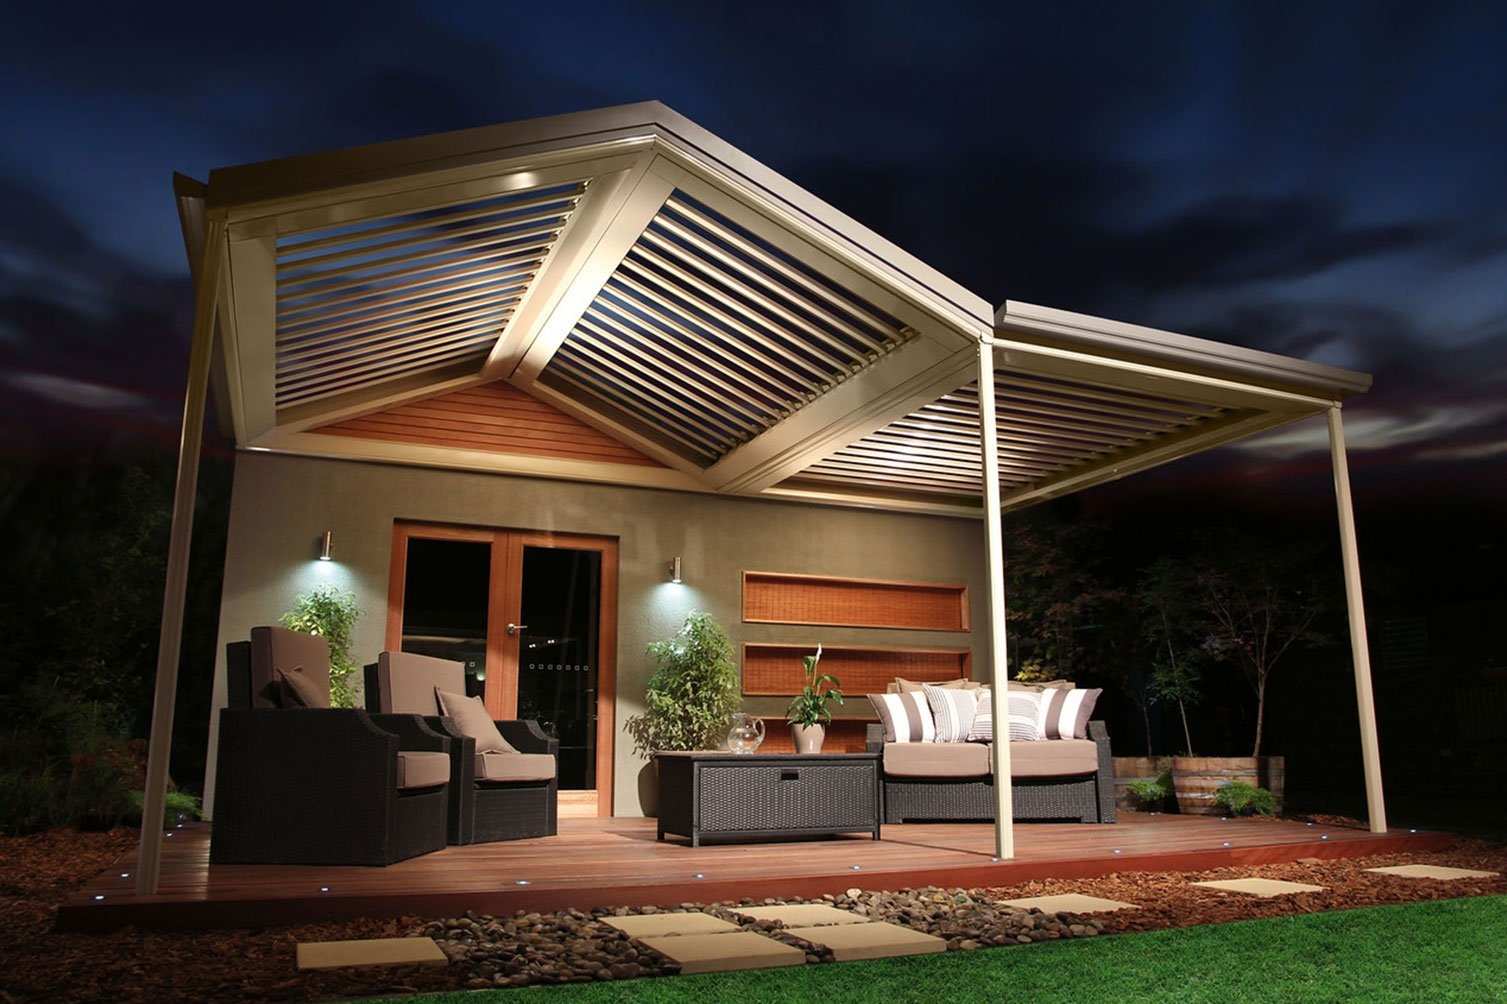 Patio builders made opening sunroofs giving relaxing cool breeze on a nightsky under in Byron Bay